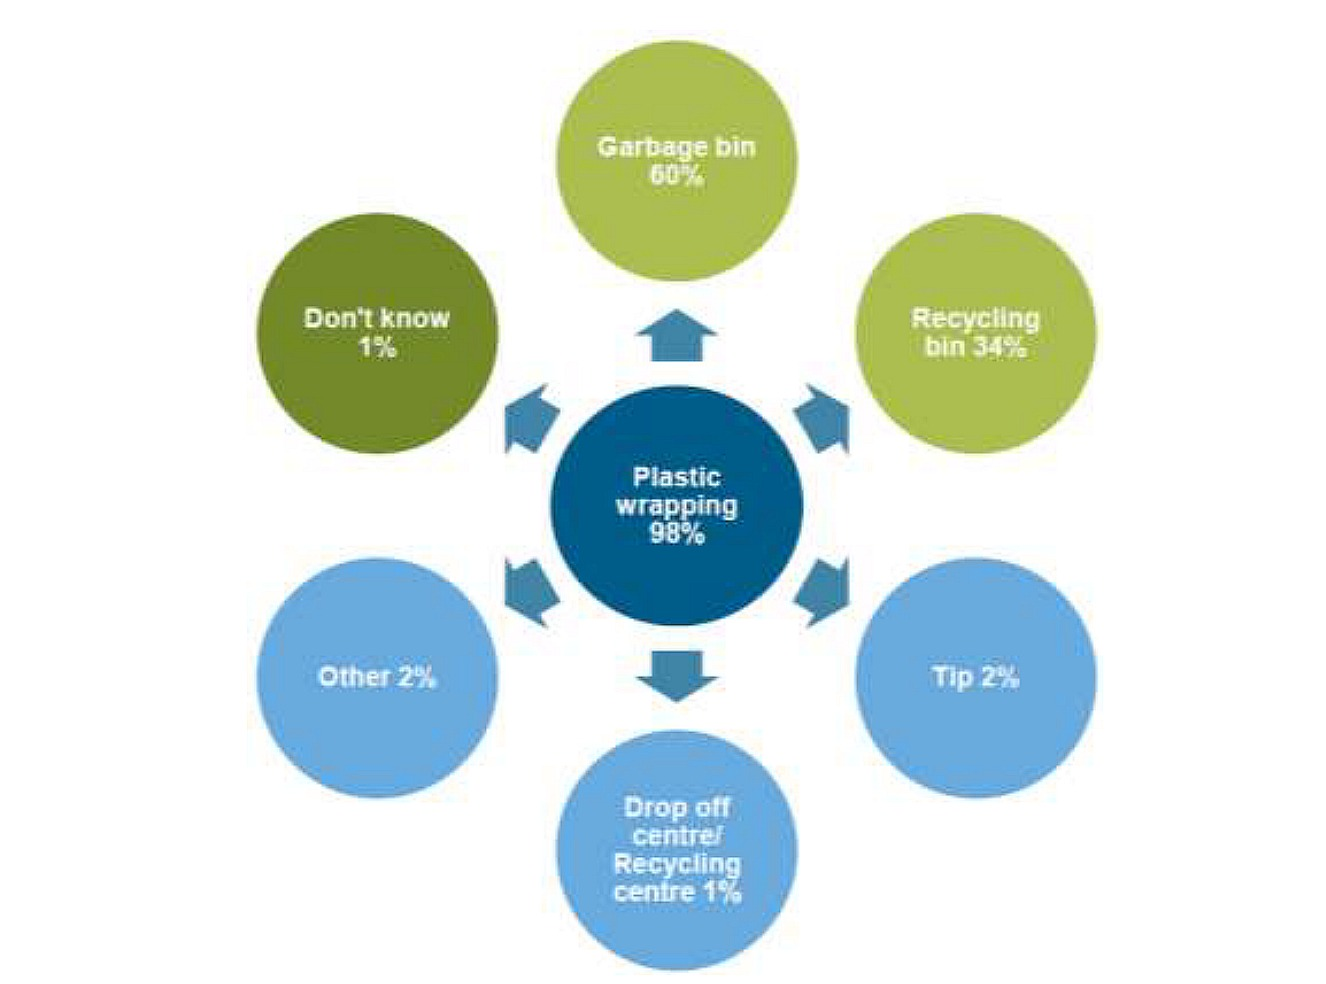 Source: http://www.epa.nsw.gov.au/resources/wastestrategy/150194-community-benchmark.pdf